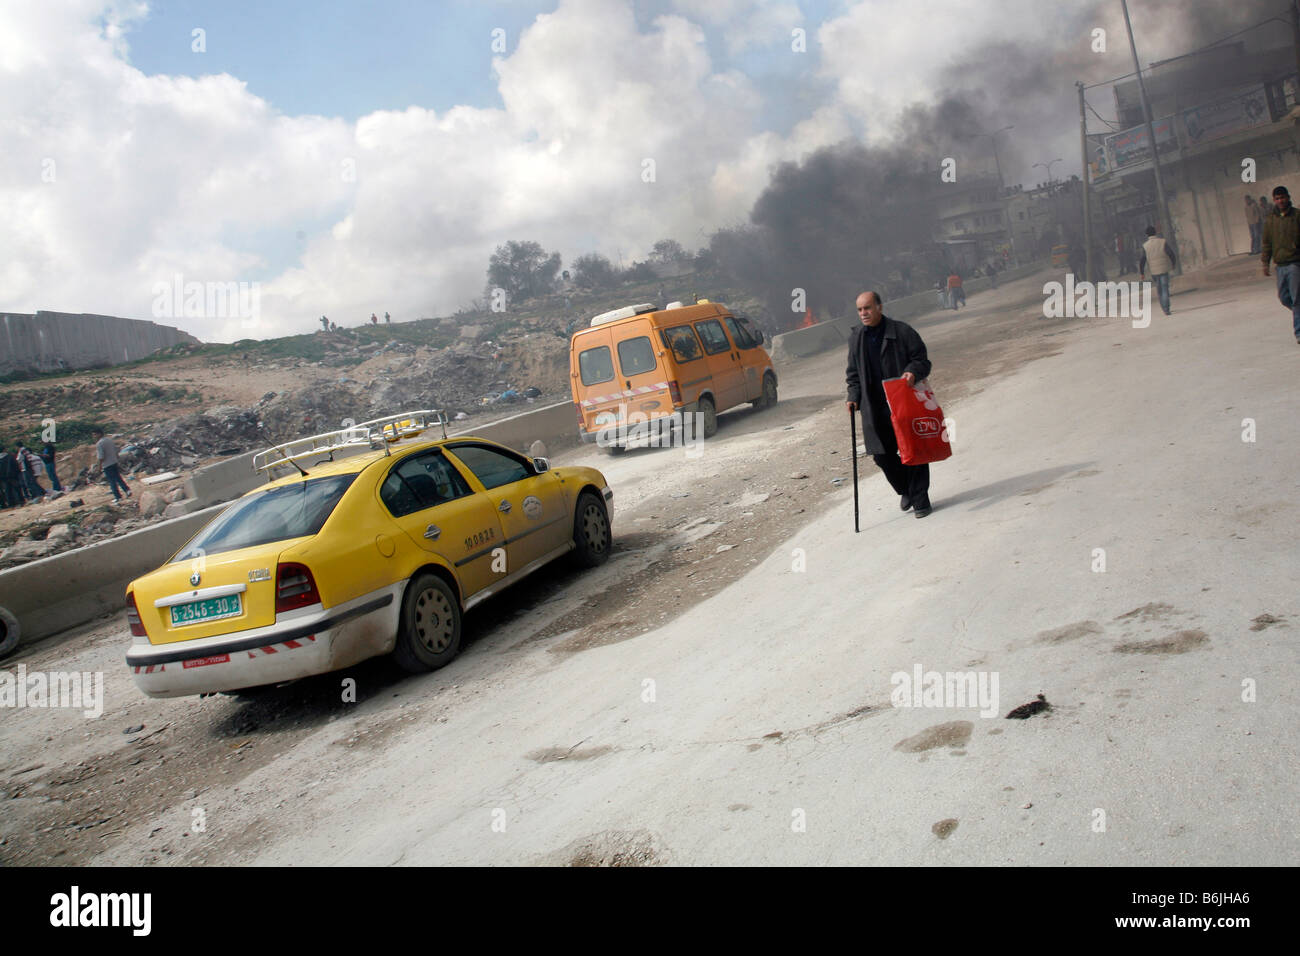 A Palestinian man walks past smoke from burning tyres during a protest in the West Bank. - Stock Image